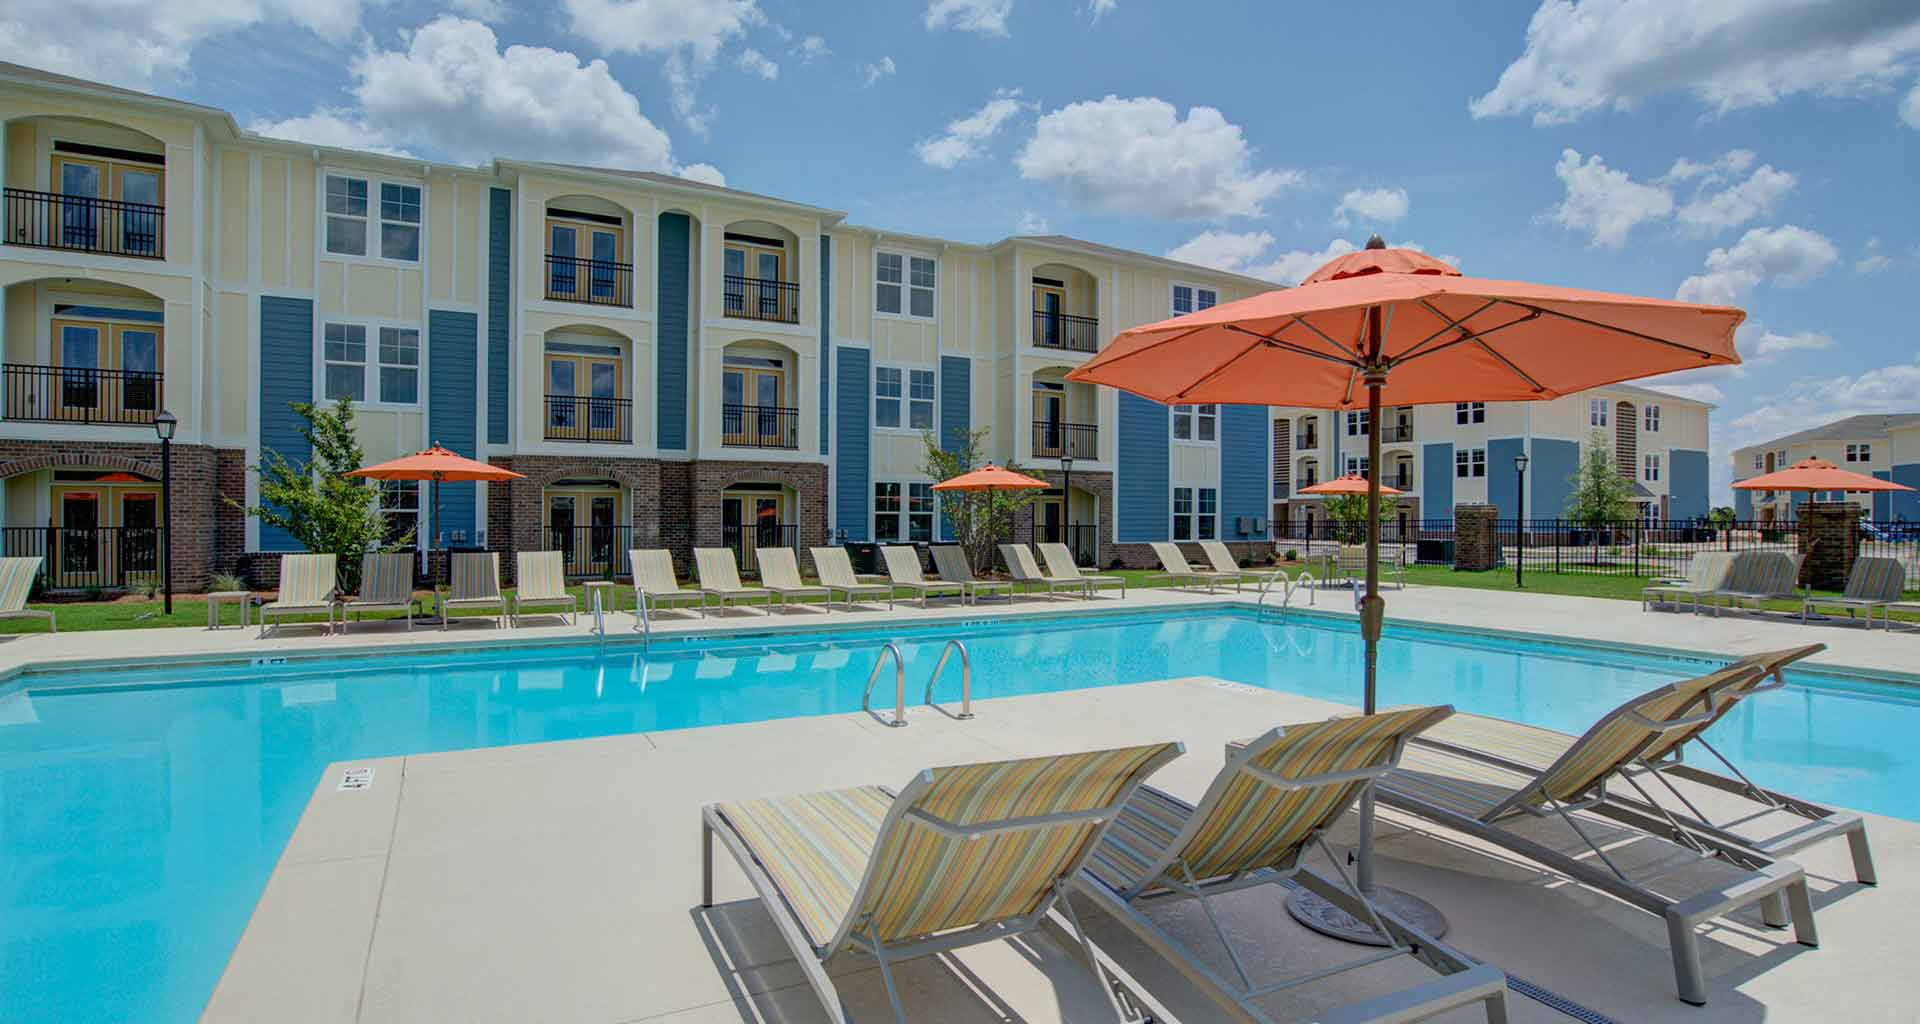 Pool Side Relaxing Area At Beckstone Apartments, Summerville, 29486